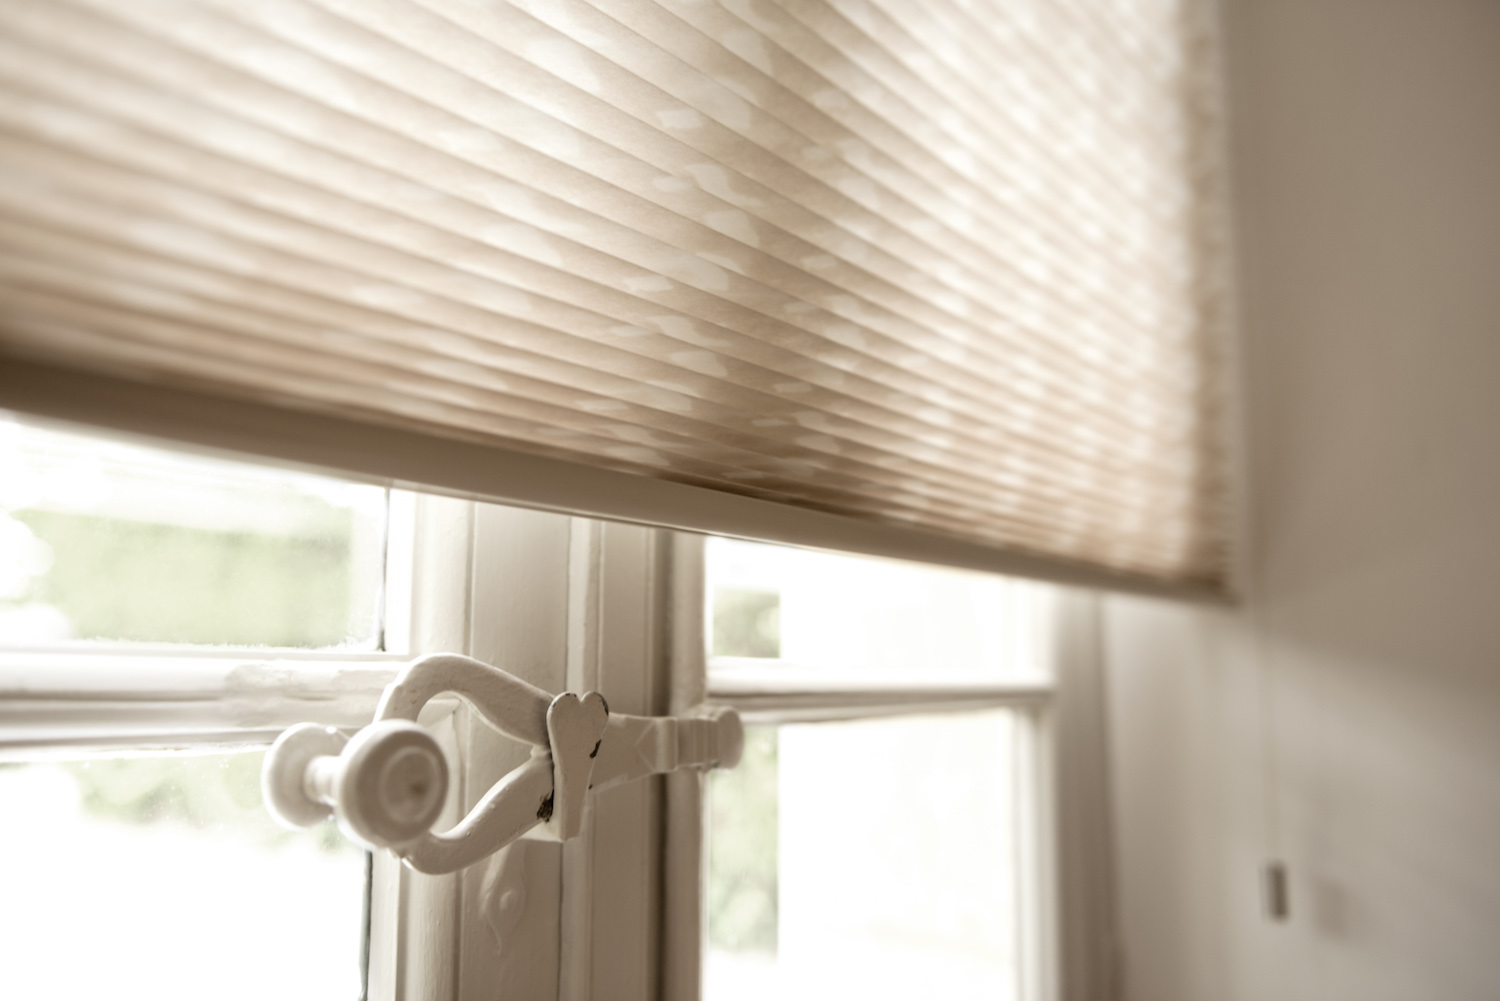 Cellular Shades are stylish but functional because of their ability to insulate temperature. Perfect for a summer bedroom.